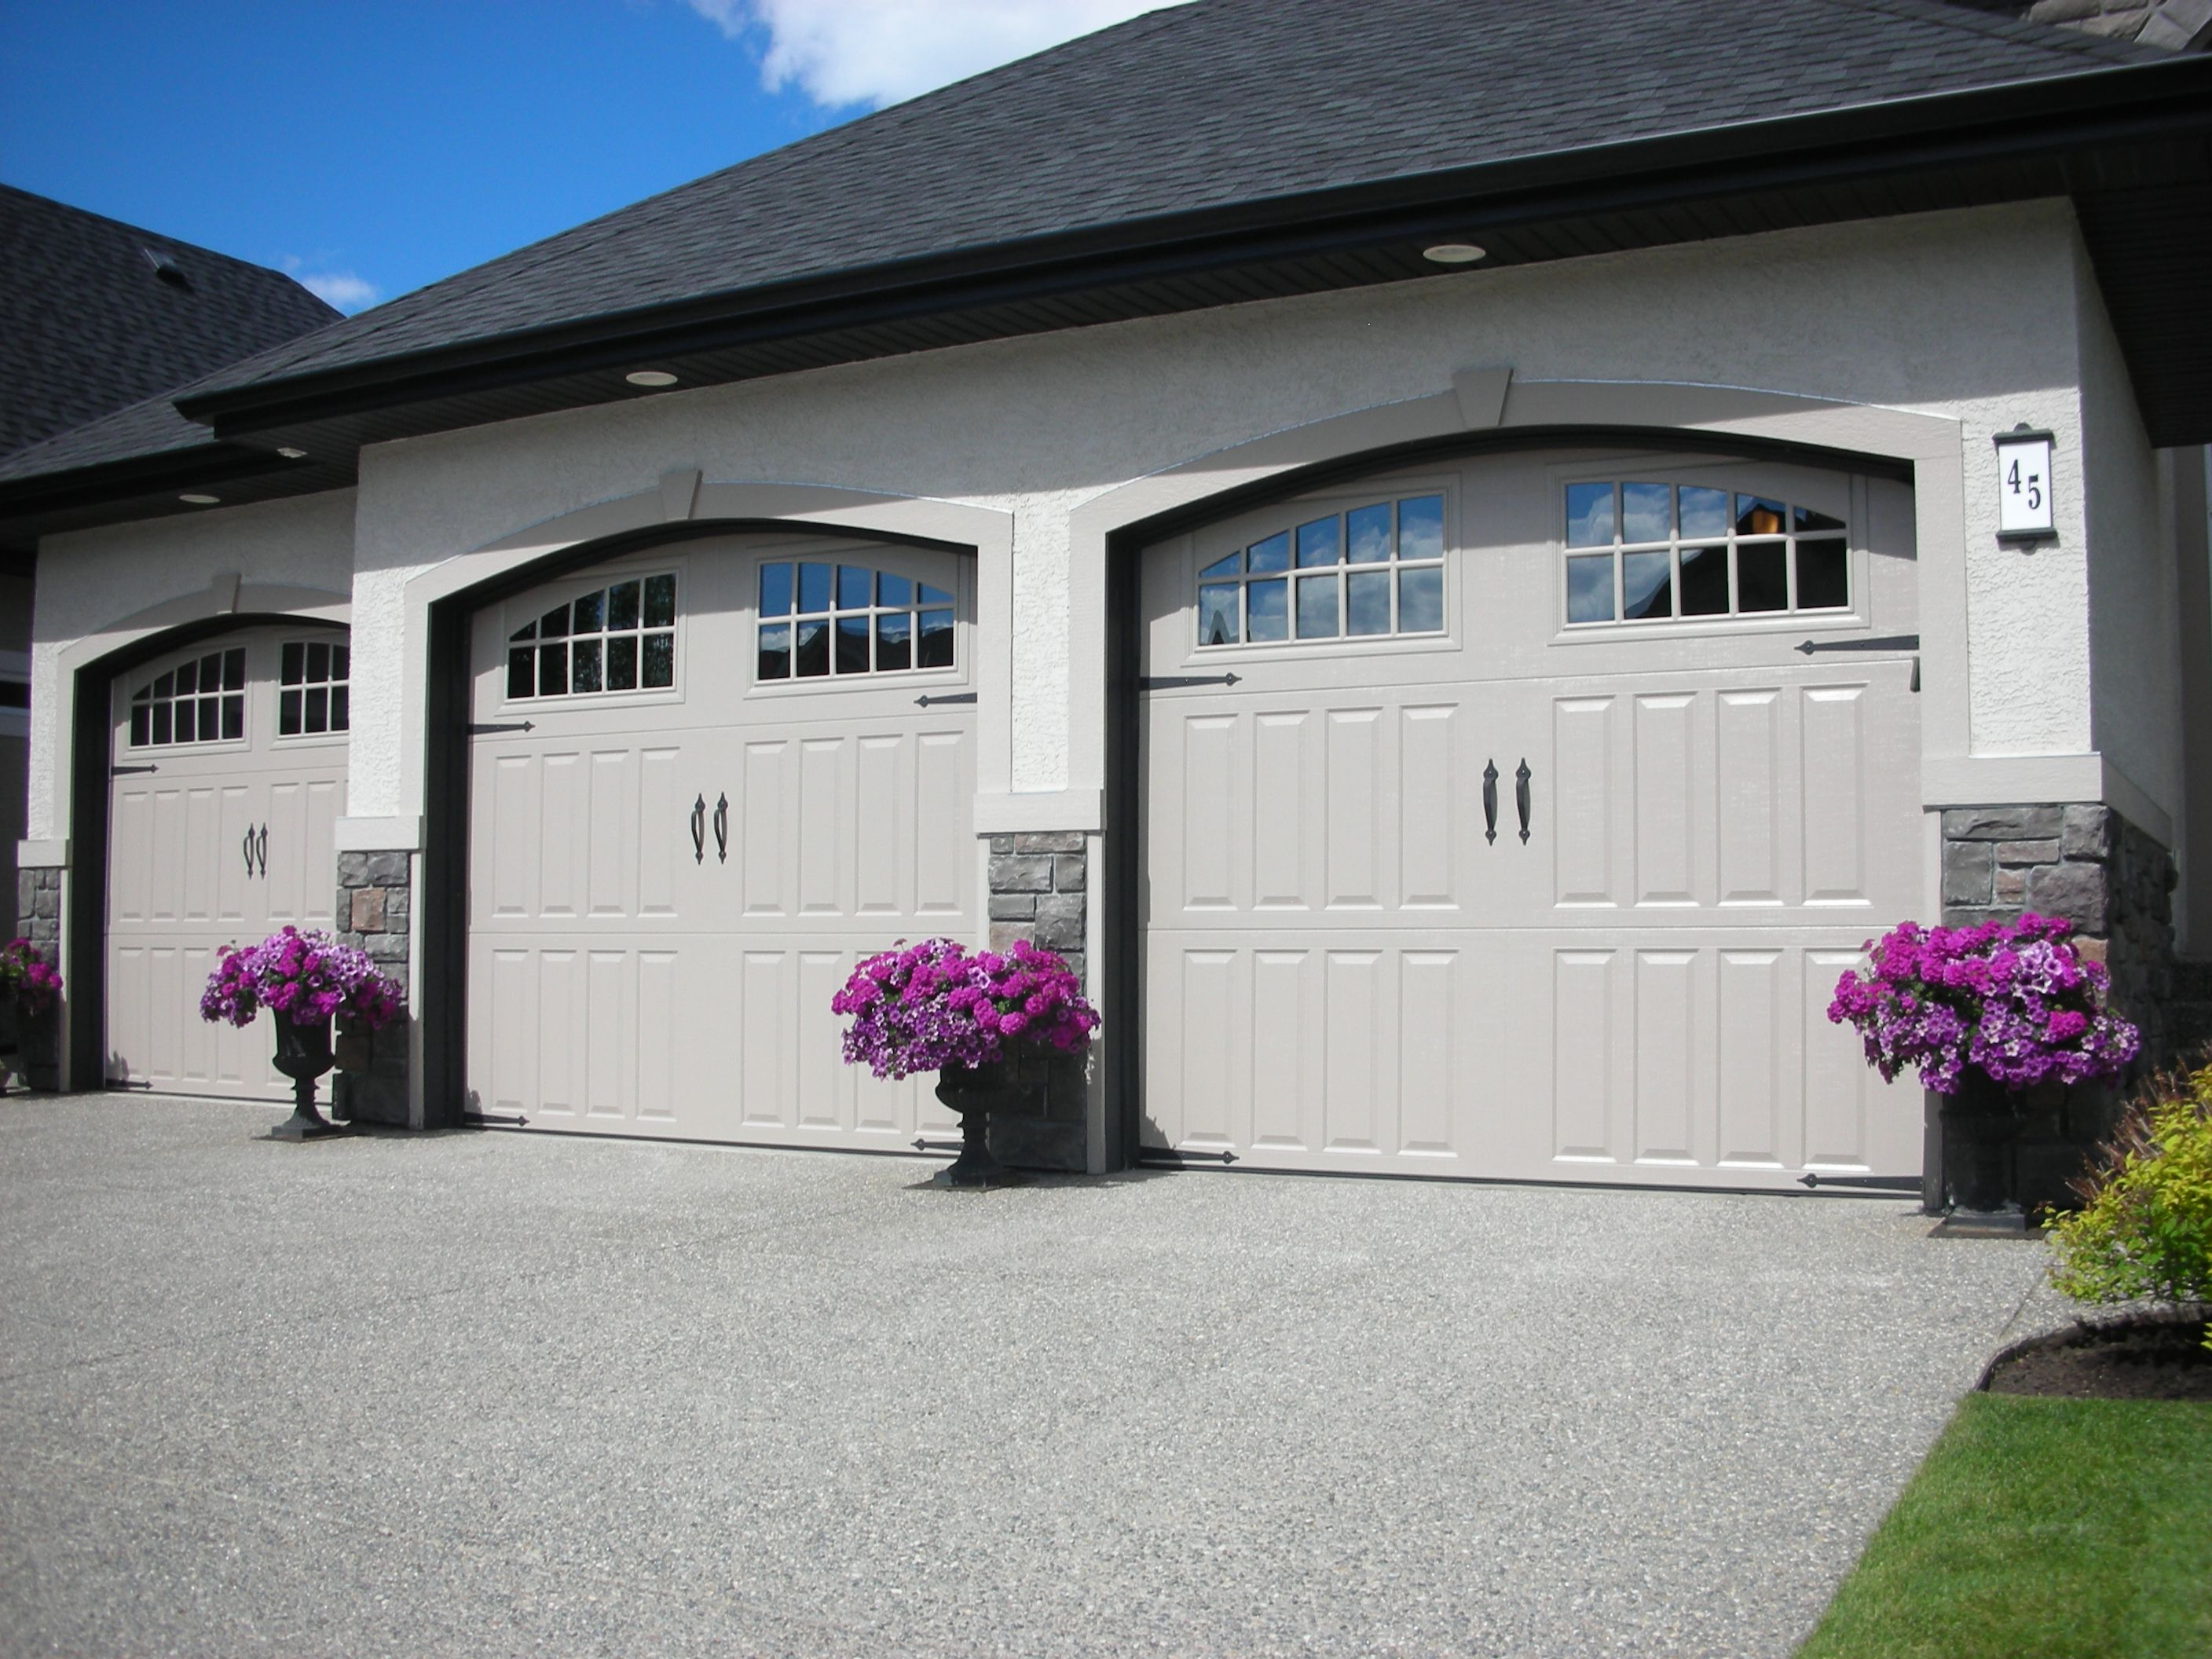 Classica northampton garage door white 9 x 8 no windows - Amarr Classica Bordeaux Garage Door With Seine Windows Visit Www Amarr Com